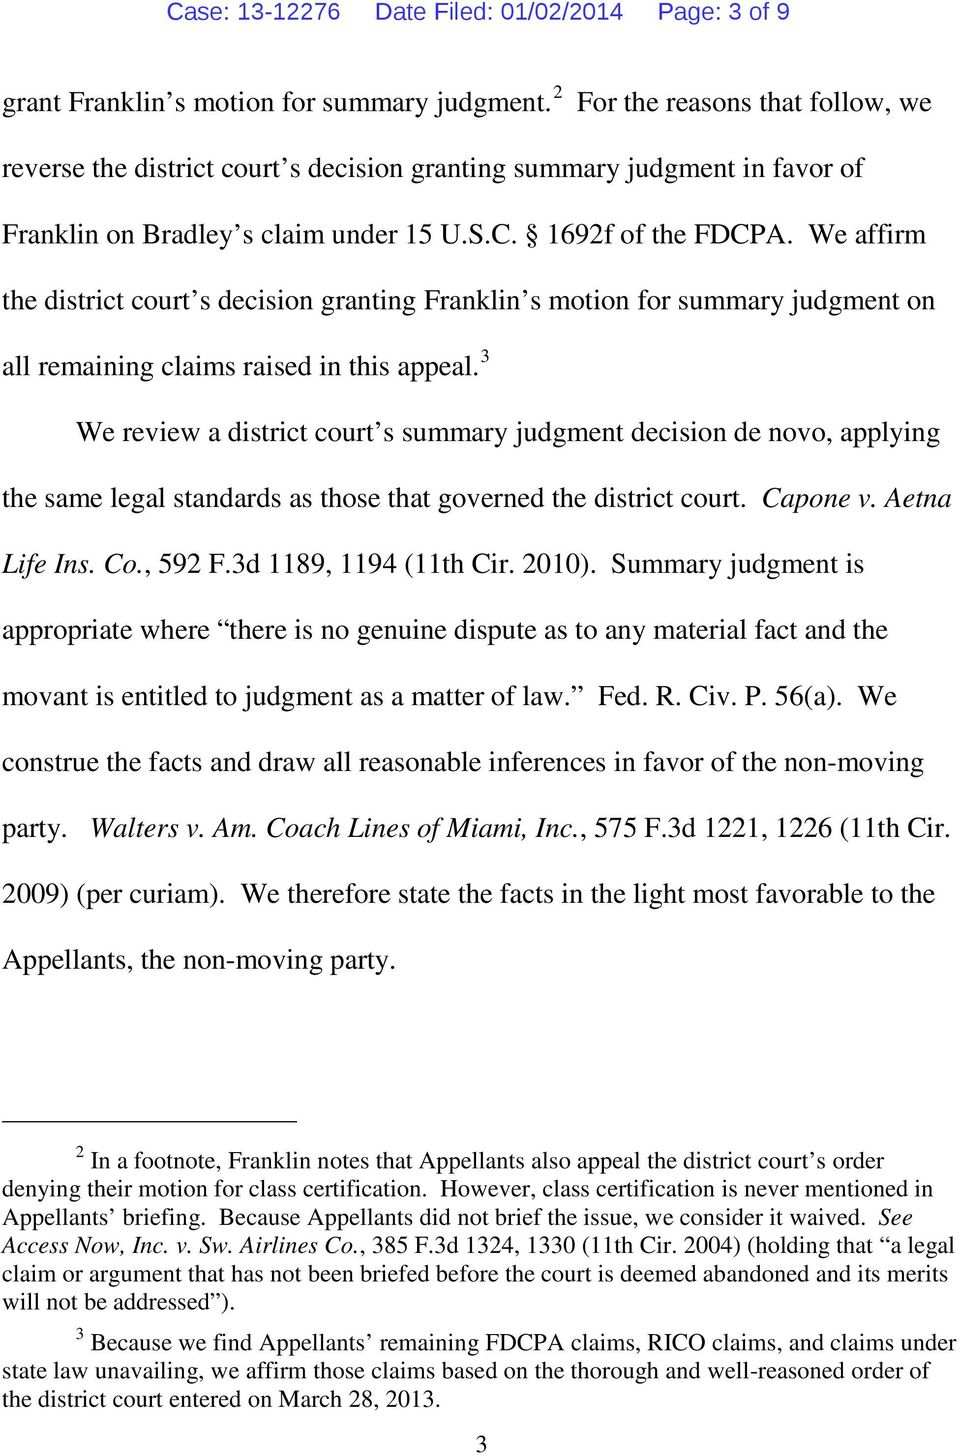 We affirm the district court s decision granting Franklin s motion for summary judgment on all remaining claims raised in this appeal.